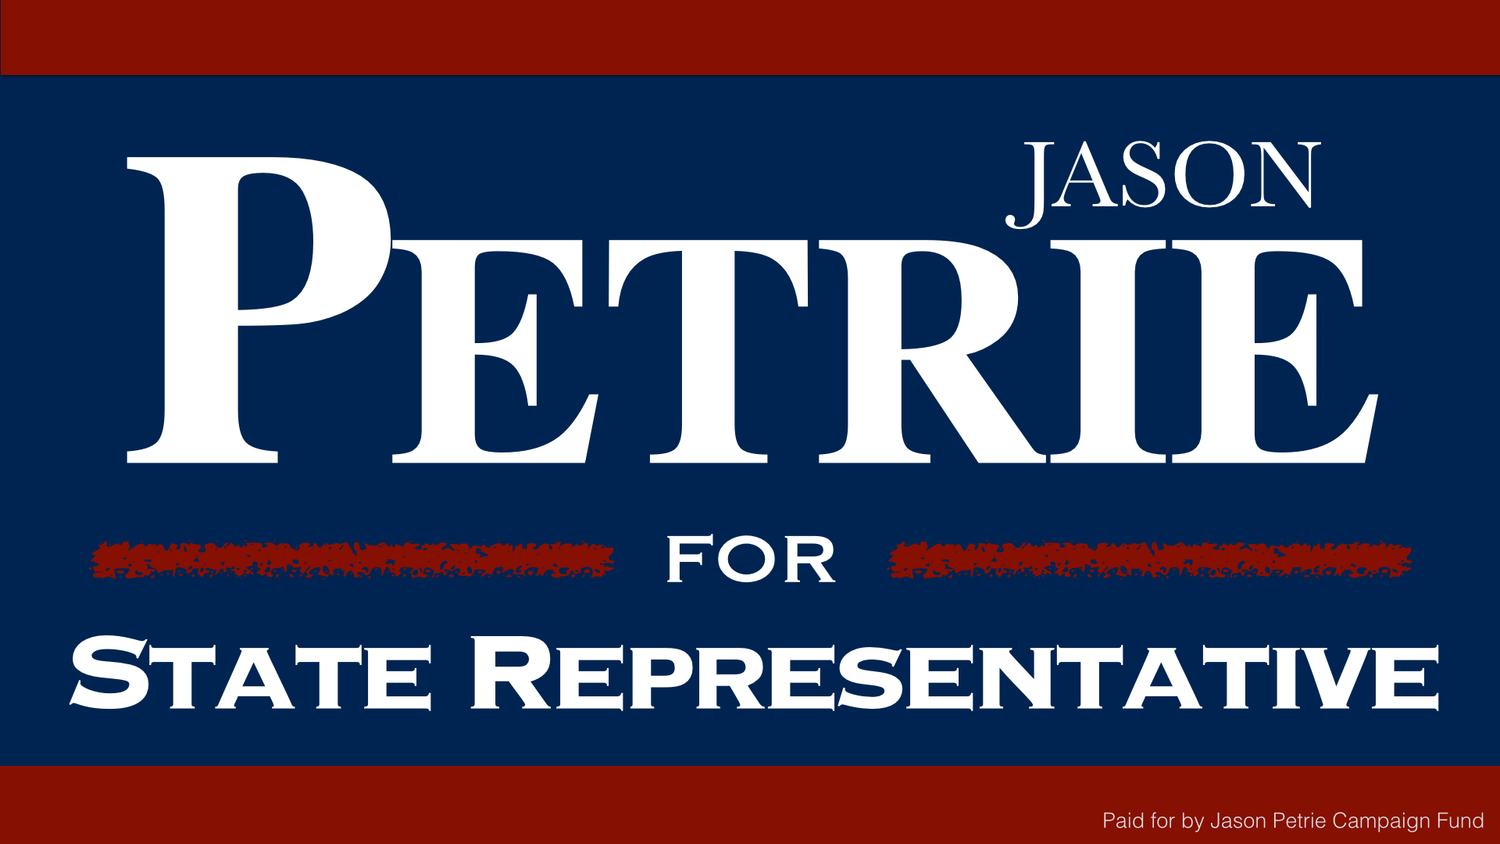 Jason Petrie for State Representative